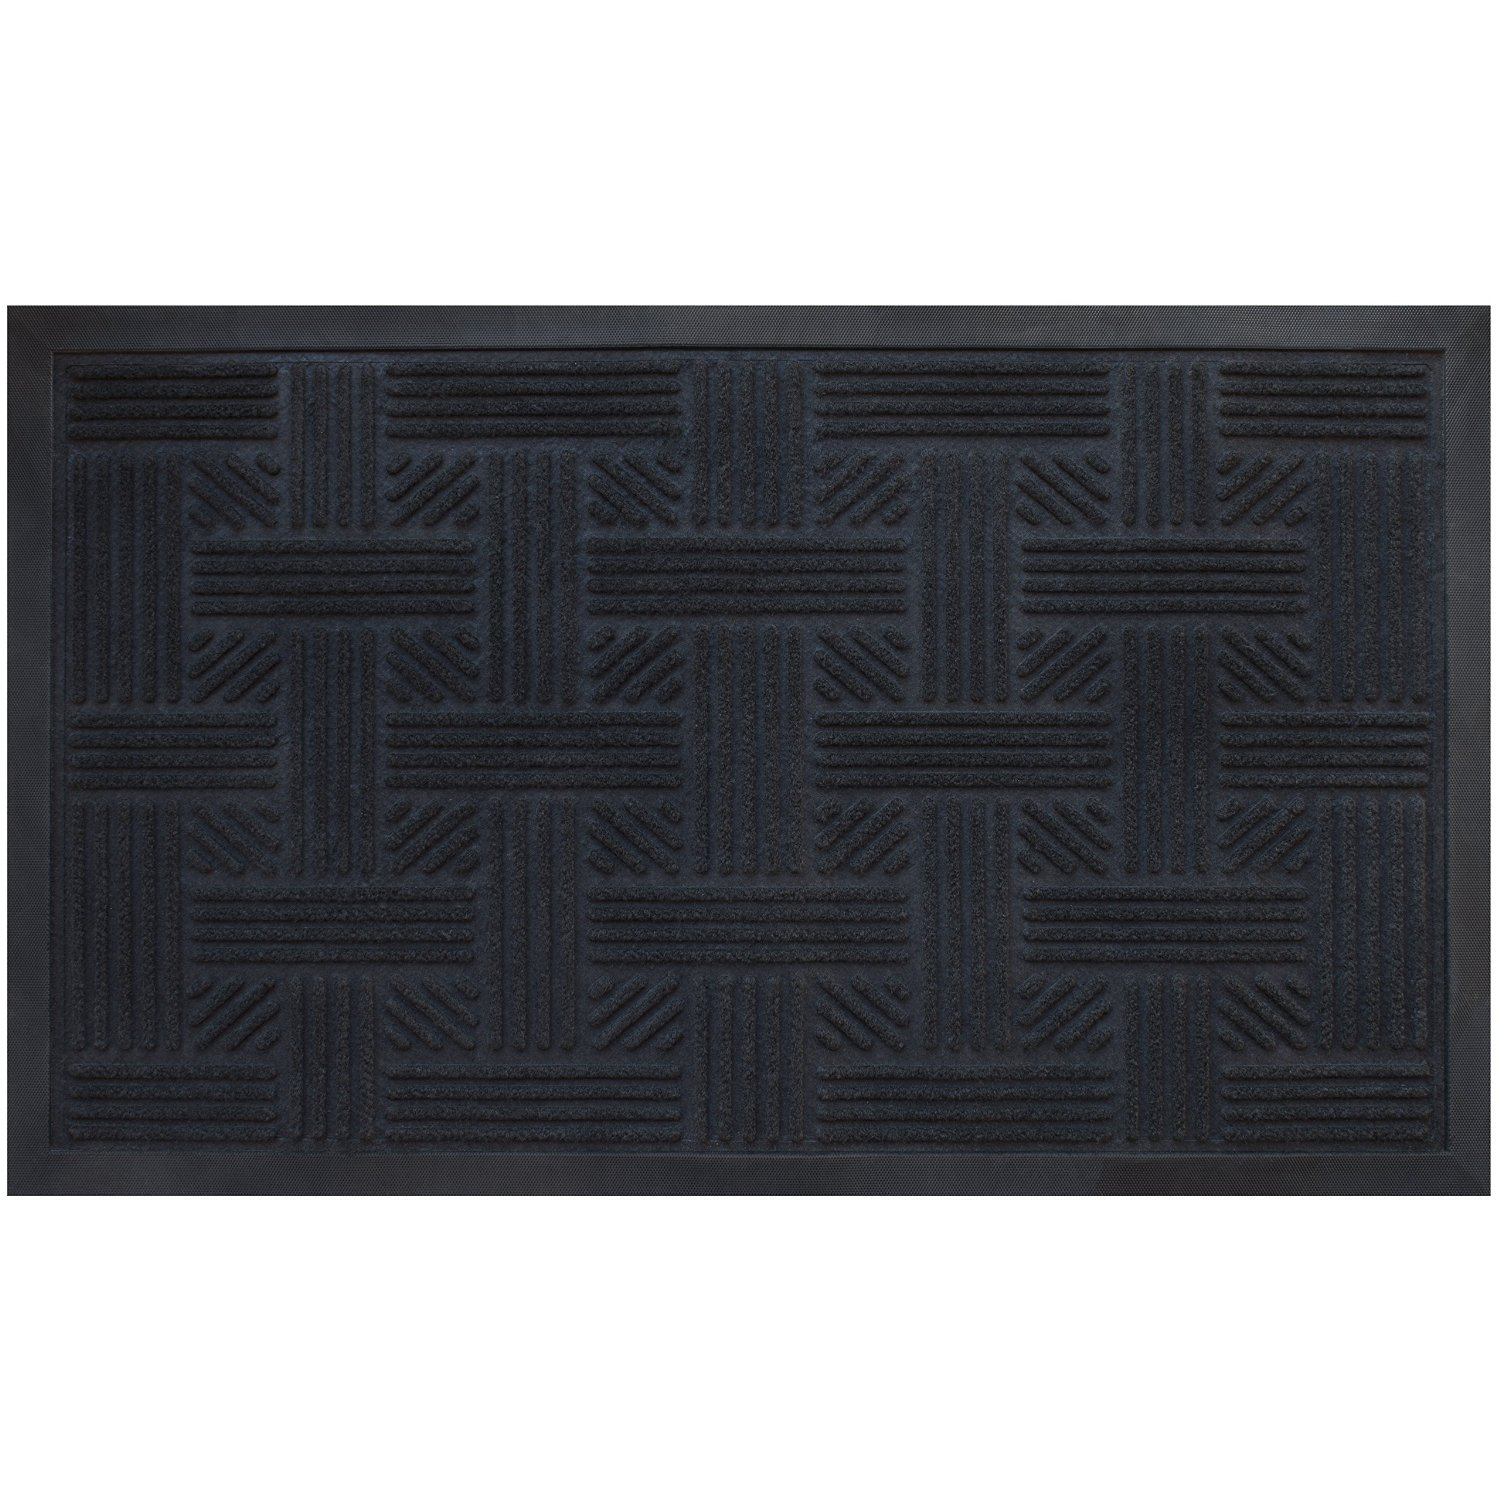 Alpine Neighbor Cross Hatch Doormat Low Profile Waterproof Outdoor Black Door Mat | Washable Cross-Hatch Outside Rubber Front Entrance Floor Shoes Rug | Garage Entry Carpet Decor for House Patio